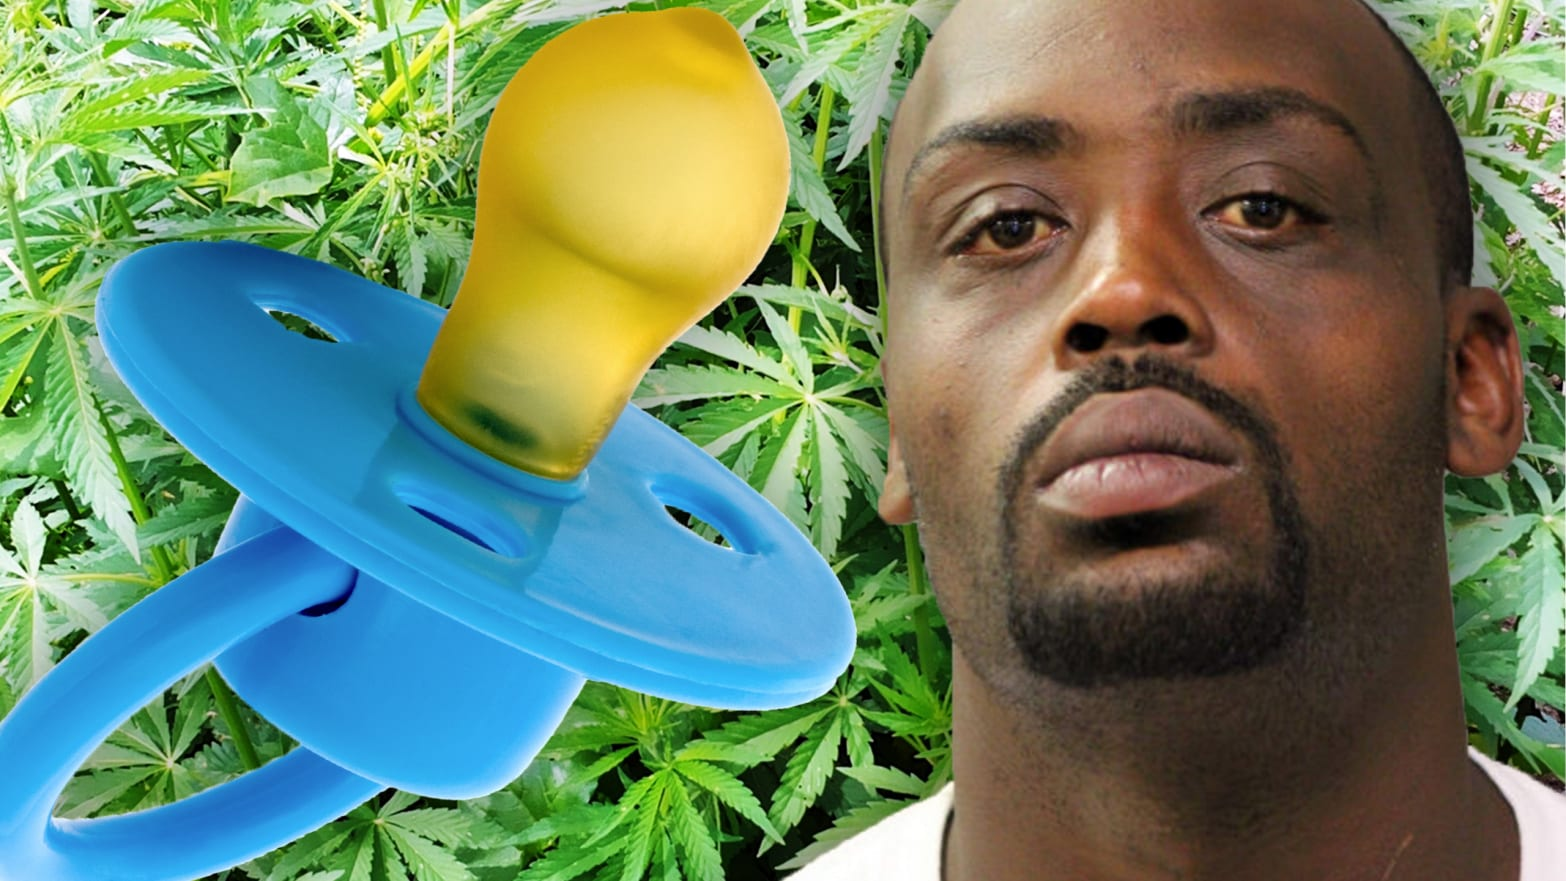 Feds: 'Hitler' Ran Weed Trafficking Ring Out of a Daycare